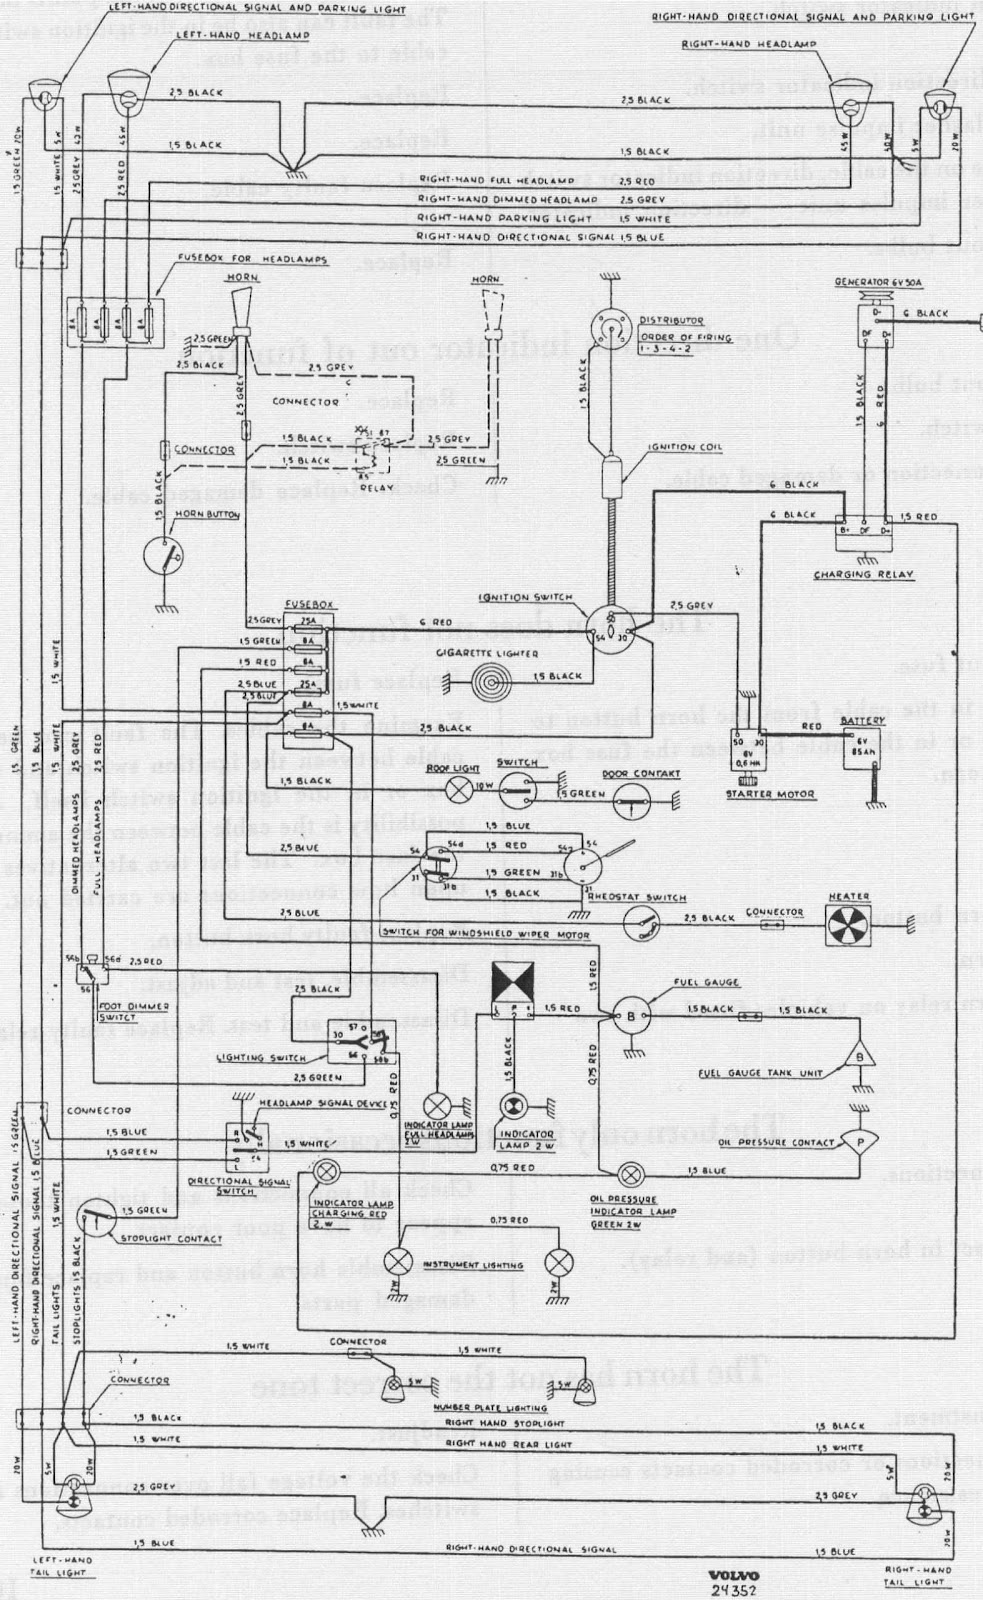 volvo wiring diagram ft 5731  complete wiring diagram of volvo pv544 all about wiring volvo wiring diagrams 740 complete wiring diagram of volvo pv544